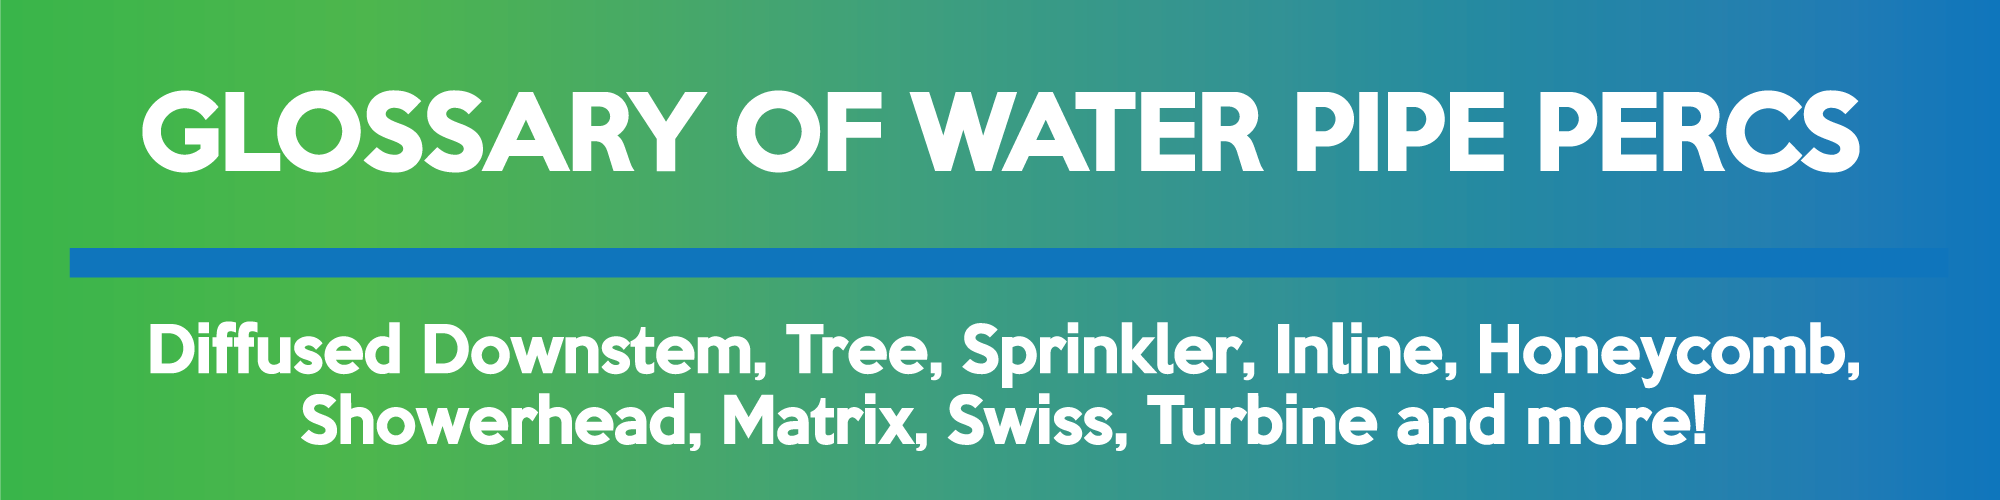 Glossary of Water Pipe Percs image